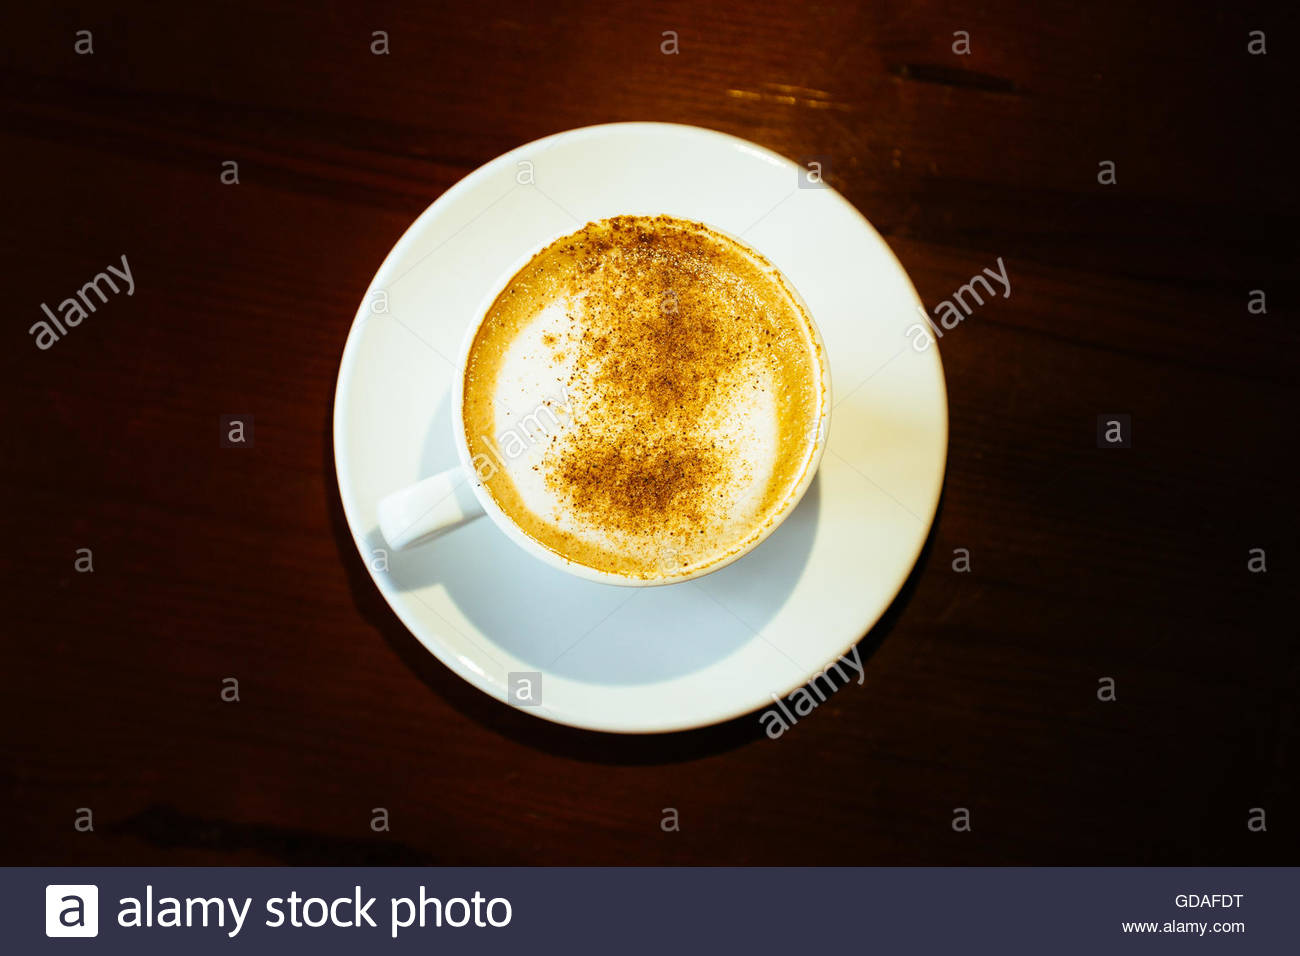 Cappuccino Coffee on Wooden table background - Stock Image